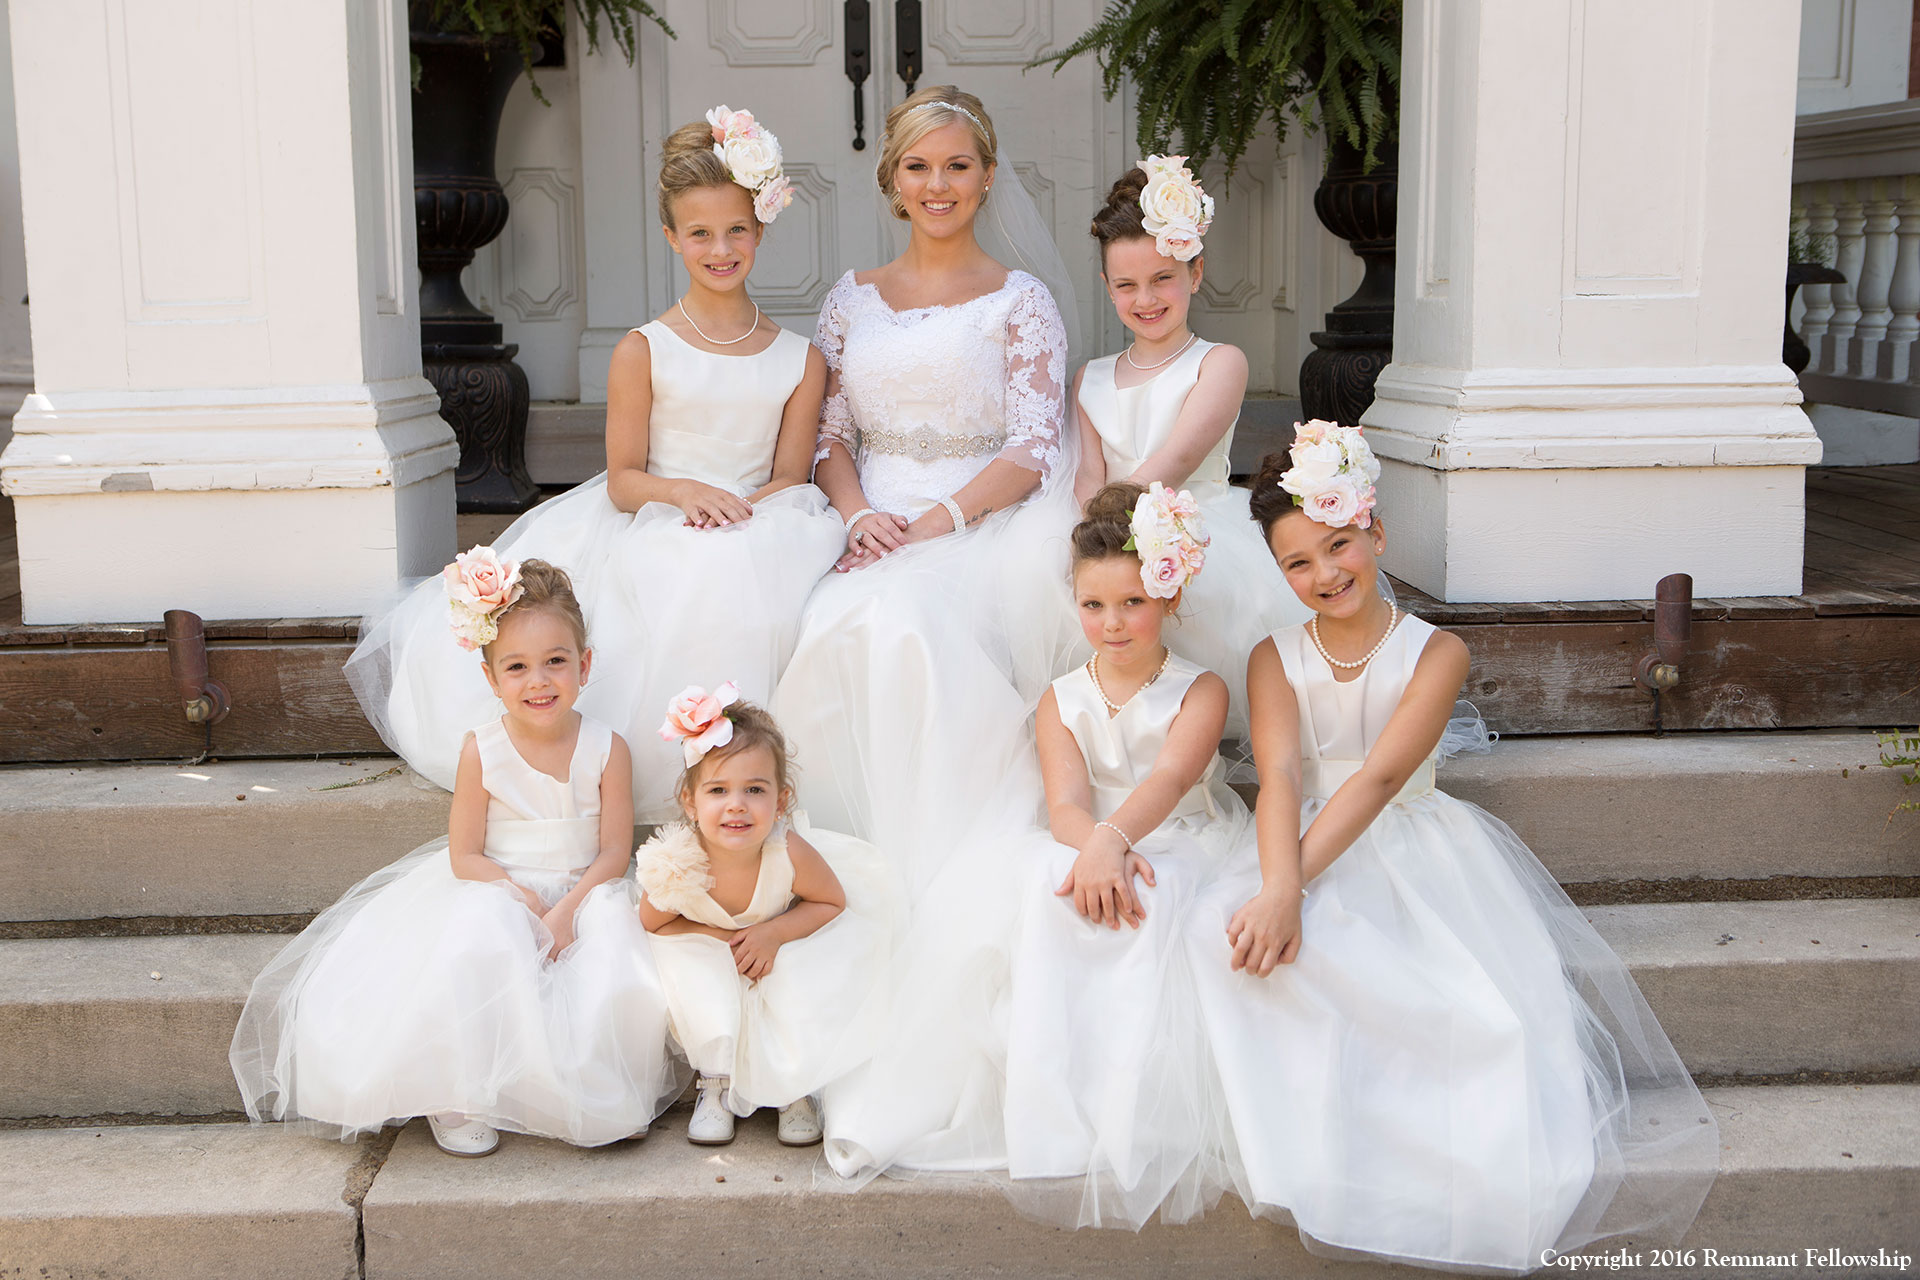 Remnant-Fellowship-Wedding-Peters-Sroda-Bride-Flowergirls